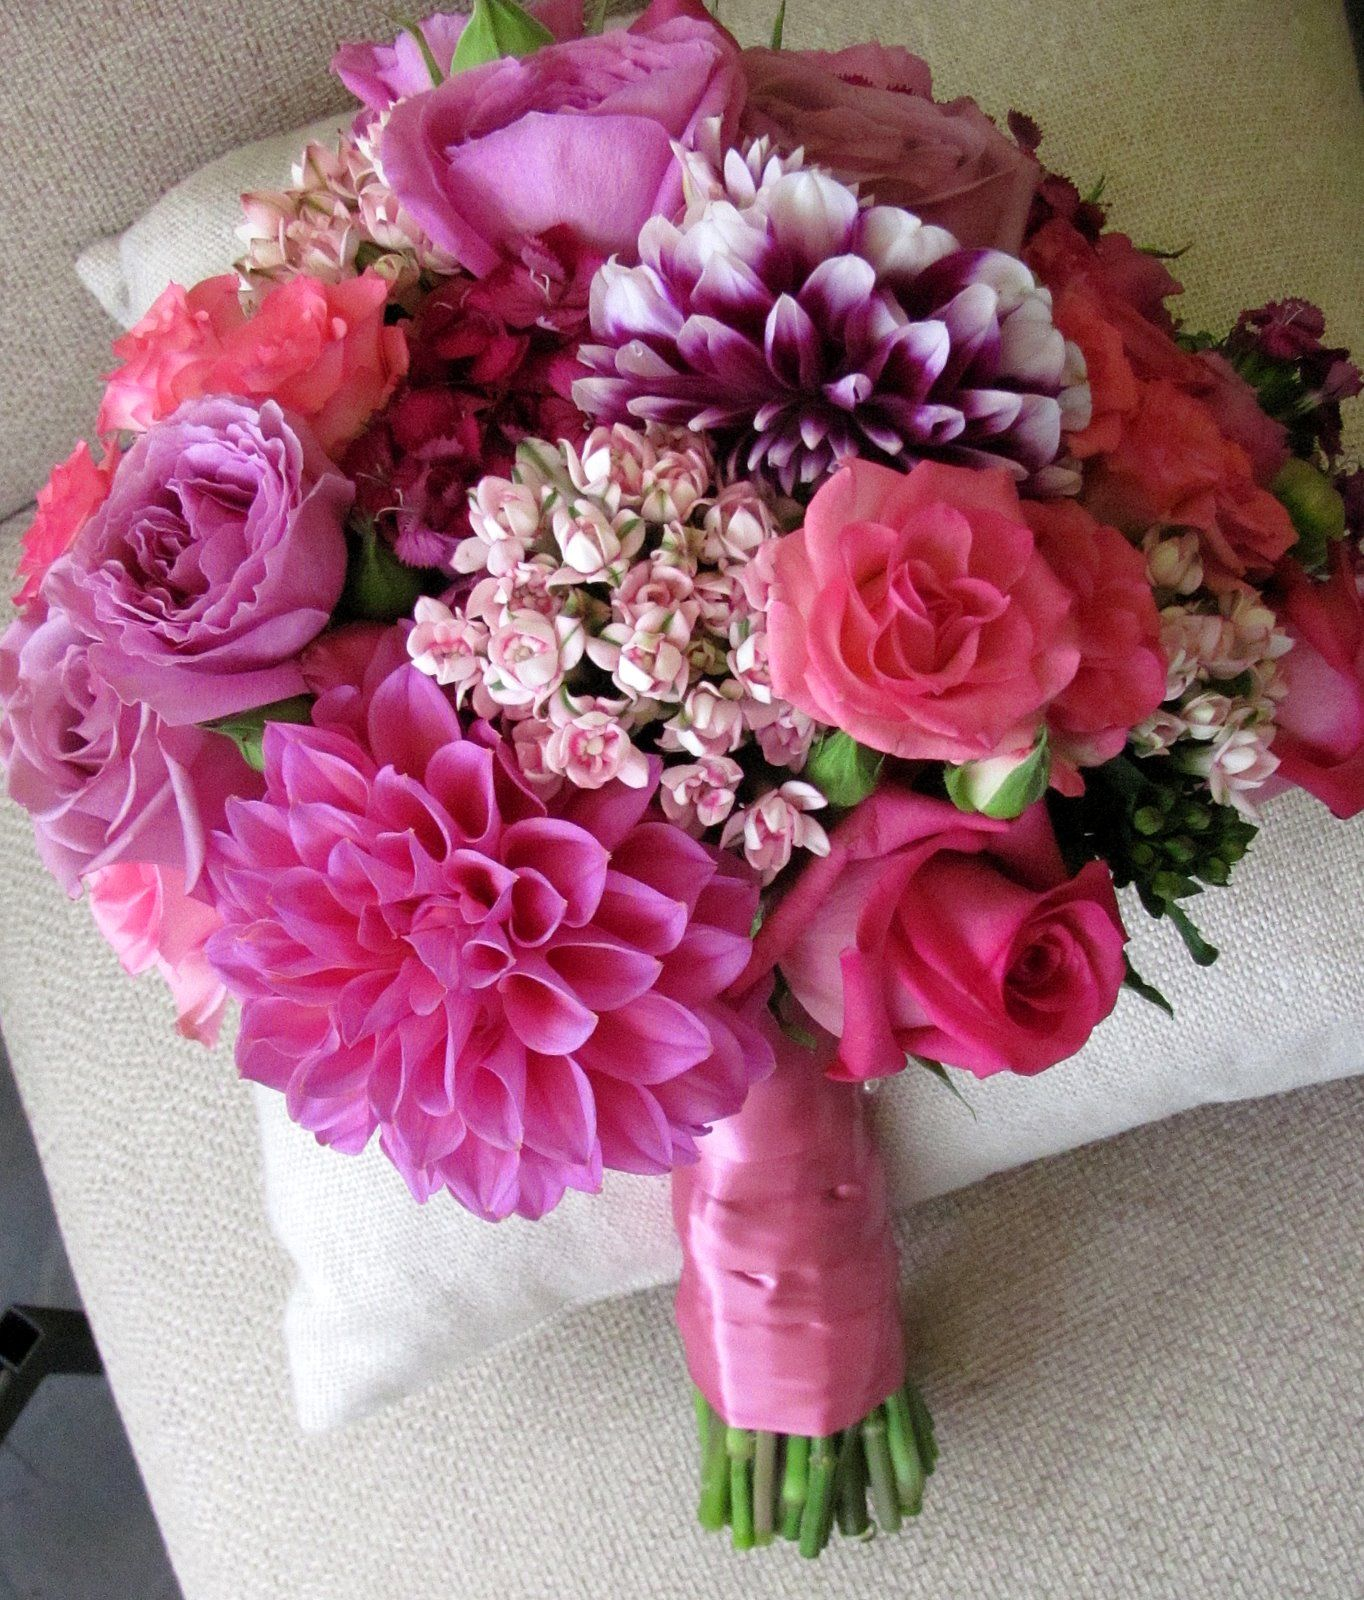 Flowers by shirley garden rose bouquets - Dahlias Bouvardia And Rose Bouquet